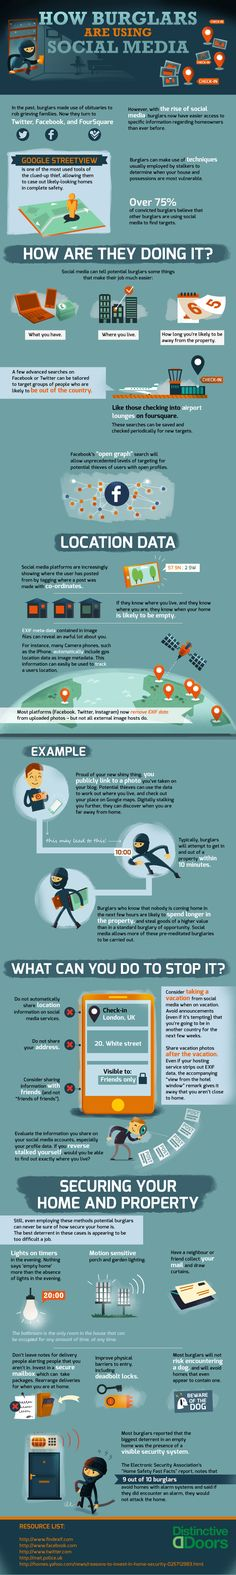 how-burglars-are-using-social-media_51c812286edf5[1].PNG